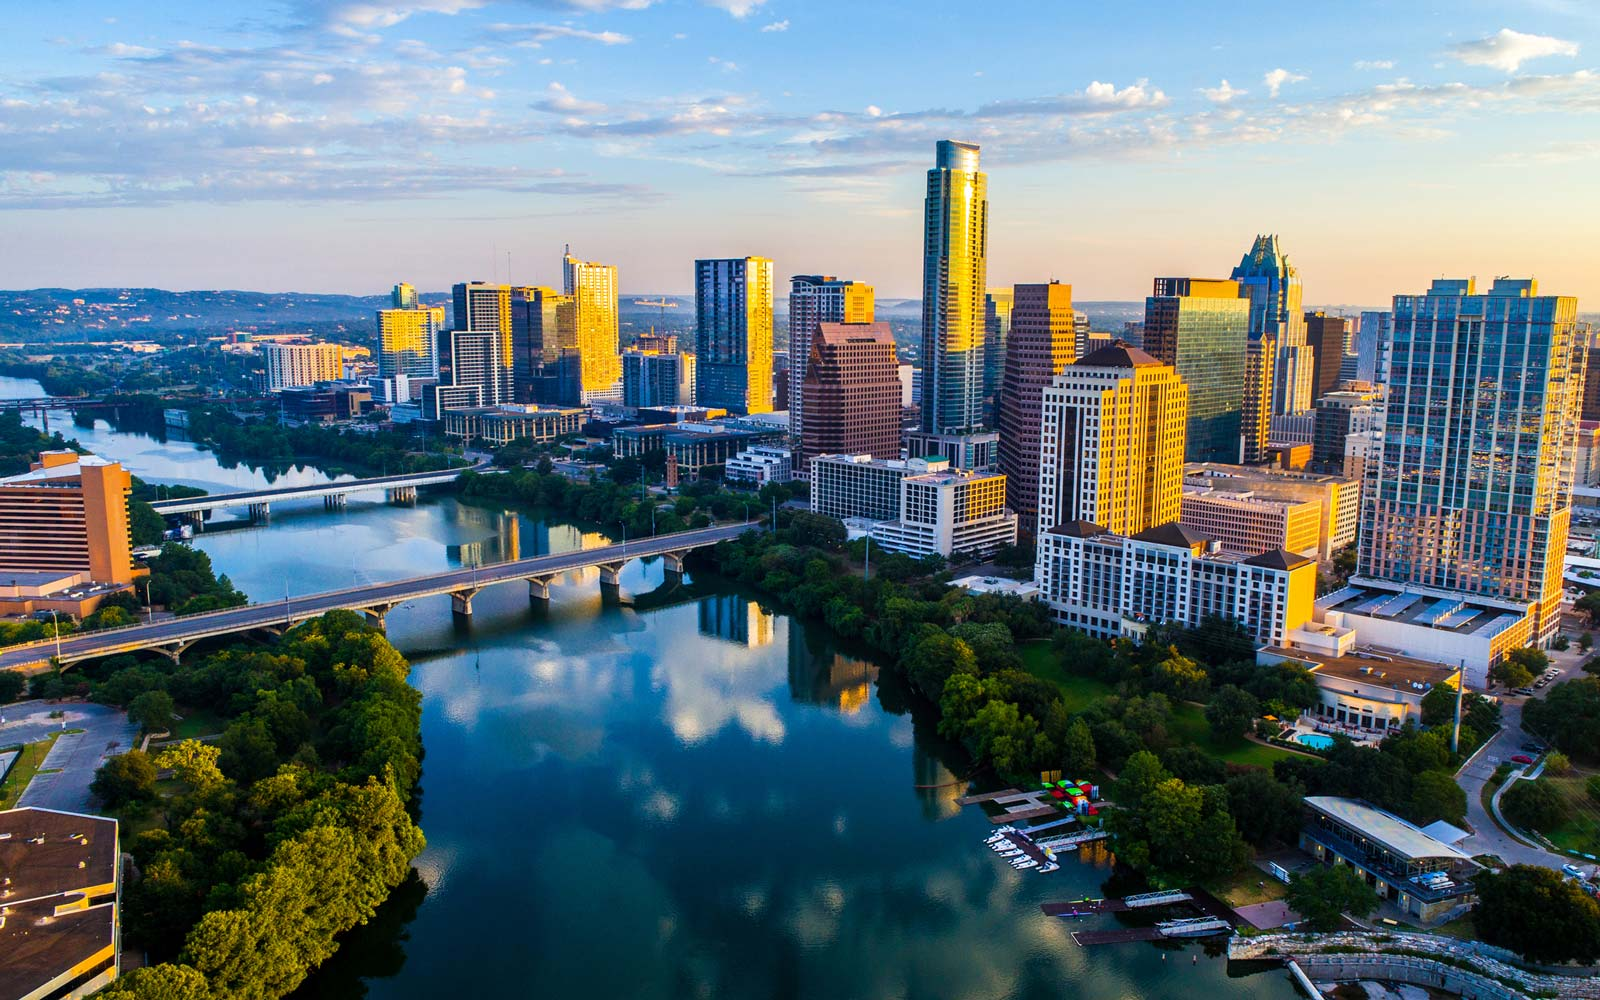 Apple Is Building a $1 Billion Campus in Austin —and Plans to Hire 20,000 People Across the U.S. by 2023